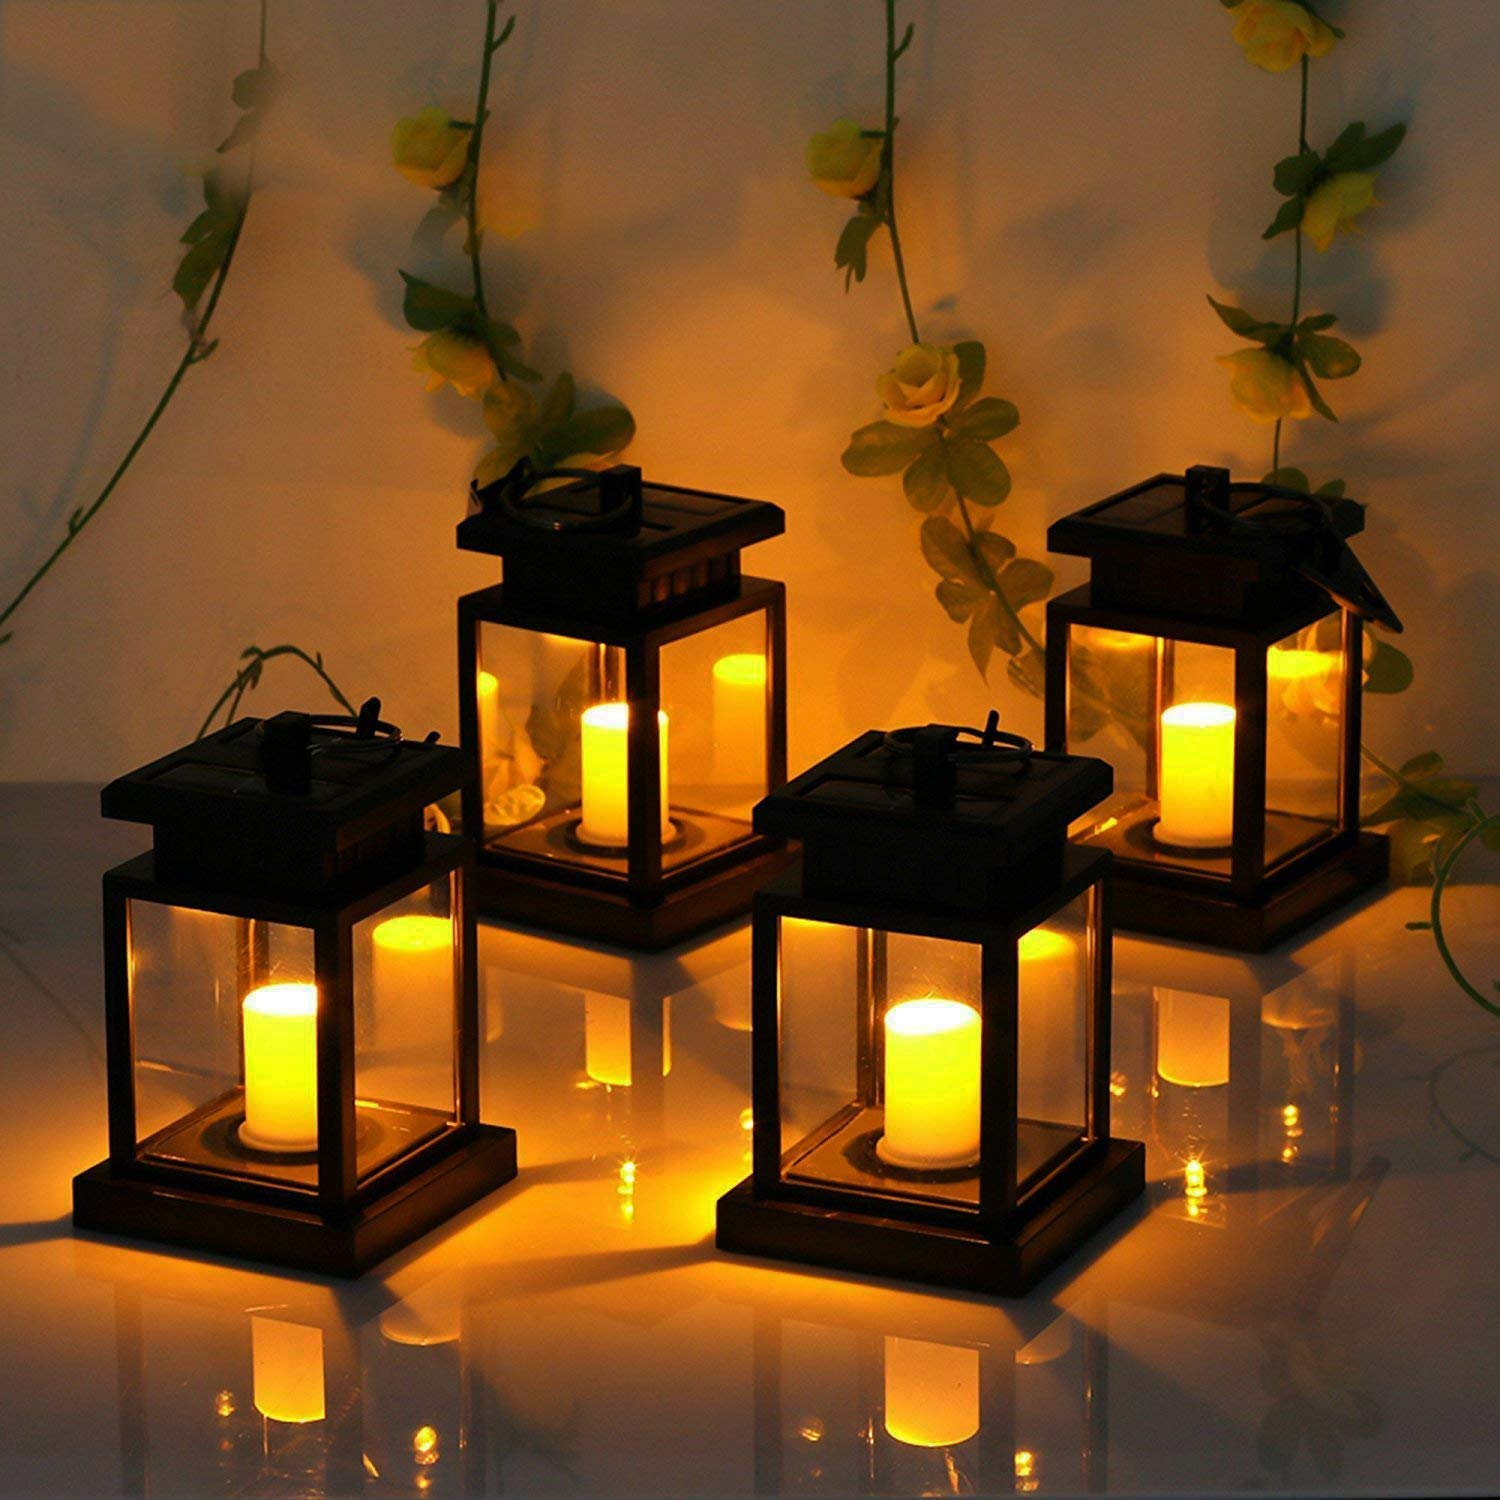 Derlights Hanging Solar Lantern 4 Pack, Waterproof Solar Candle Lantern, Solar Lights Outdoor Decorative with Clamp for Garden Patio Pavilion Beach Umbrella Tree by Derlights